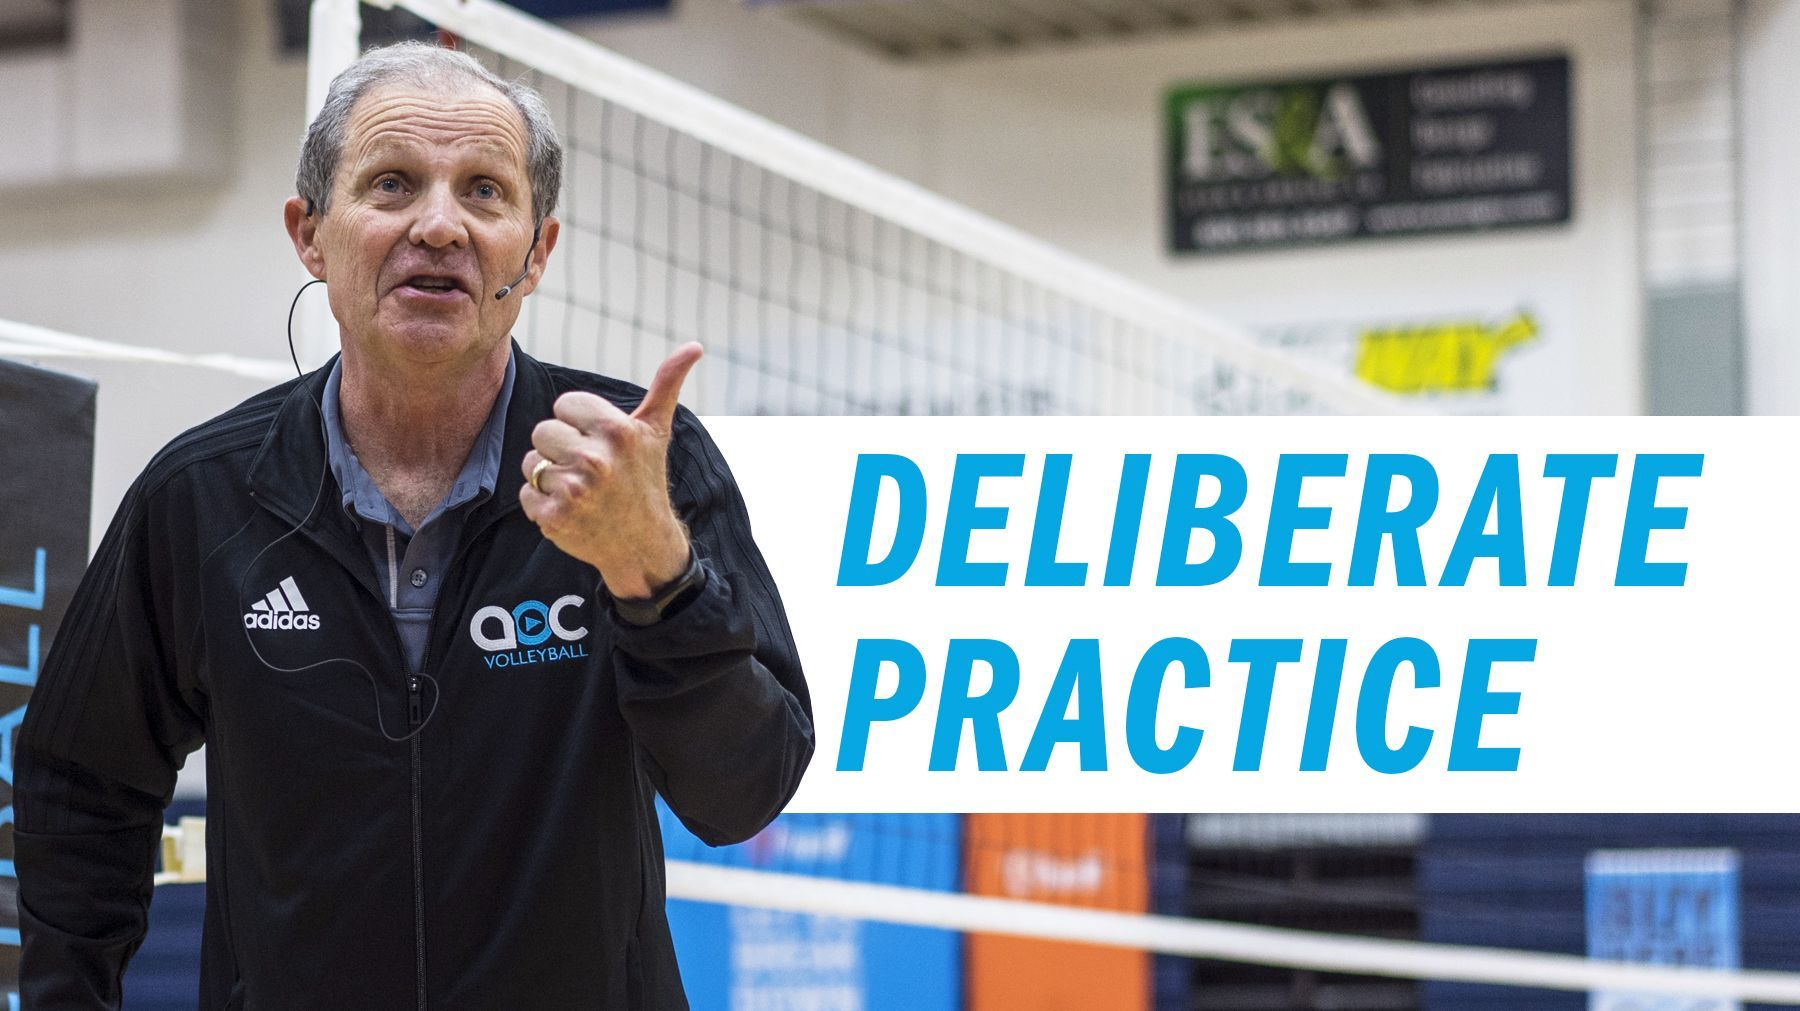 Deliberate Practice Coaching Volleyball Volleyball New Sports Cars